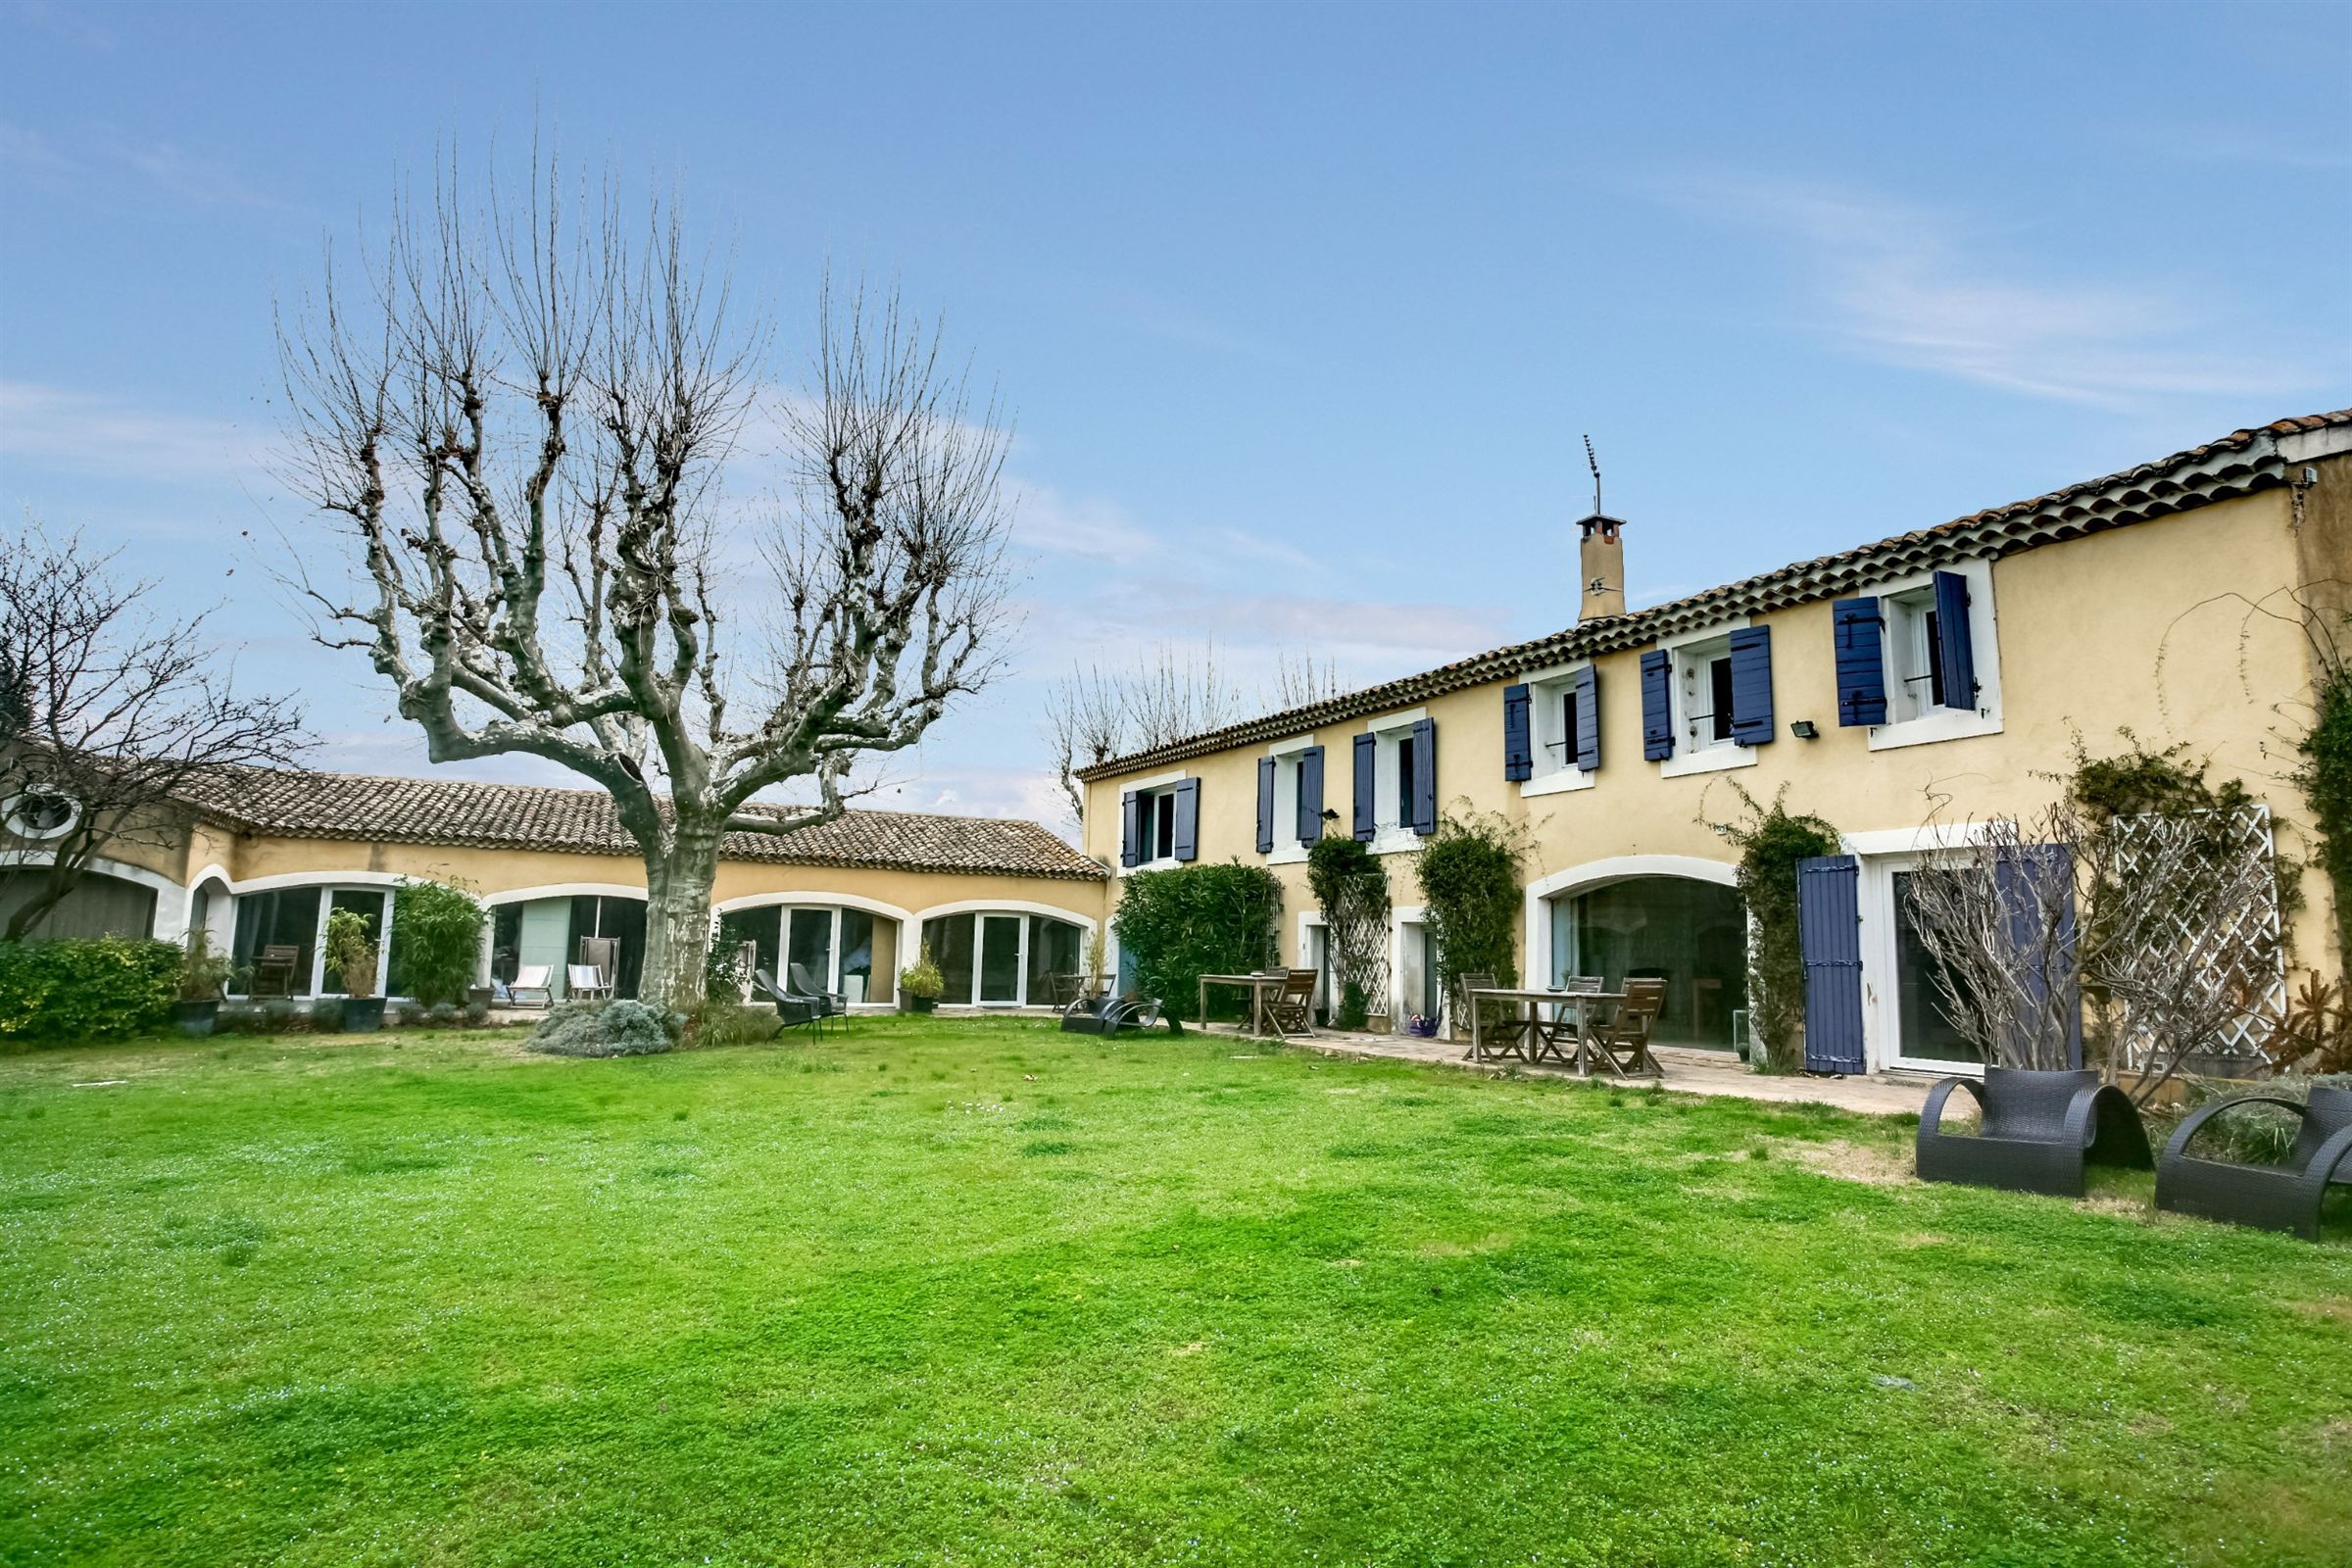 Property For Sale at AIX EN PROVENCE - Exceptional